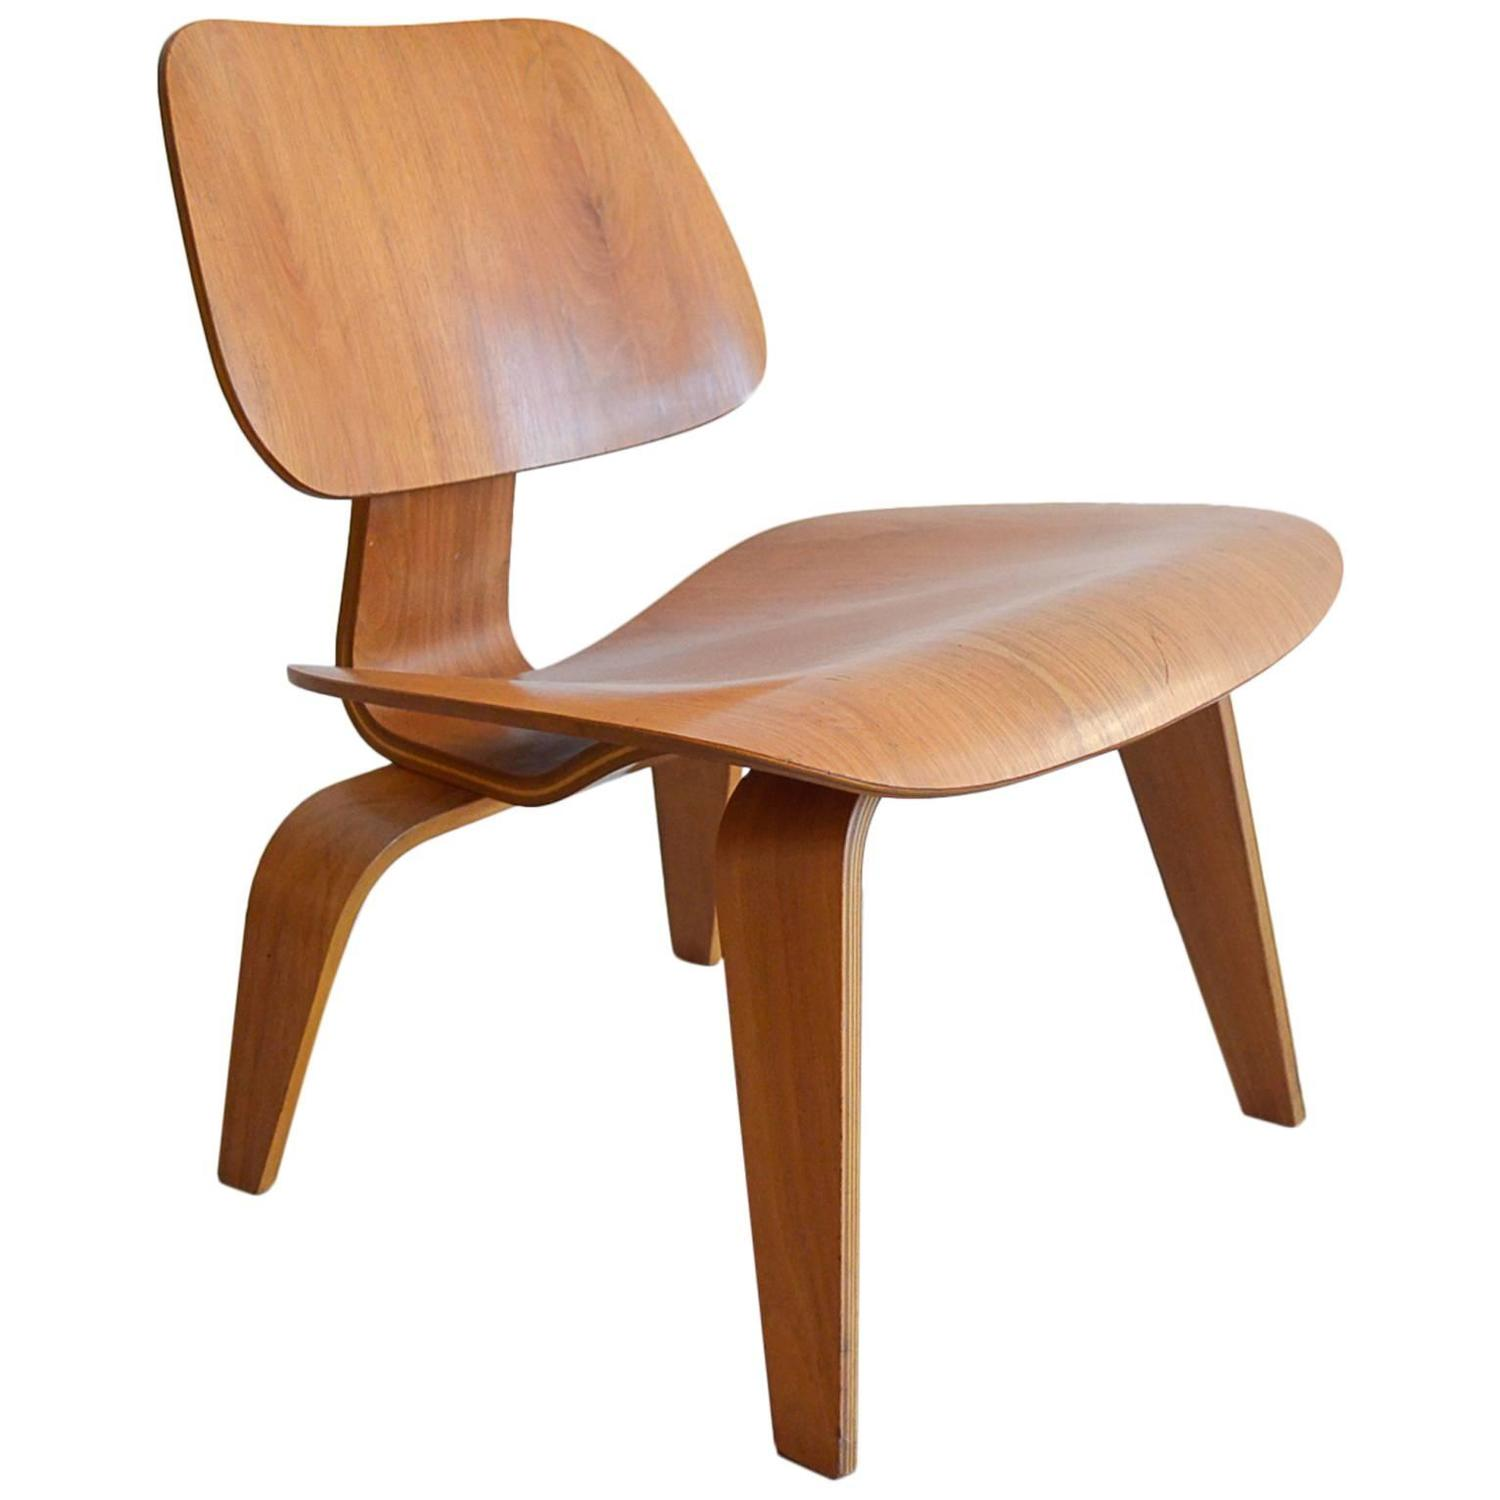 Early Eames LCW Bentwood Chair For Sale at 1stdibs